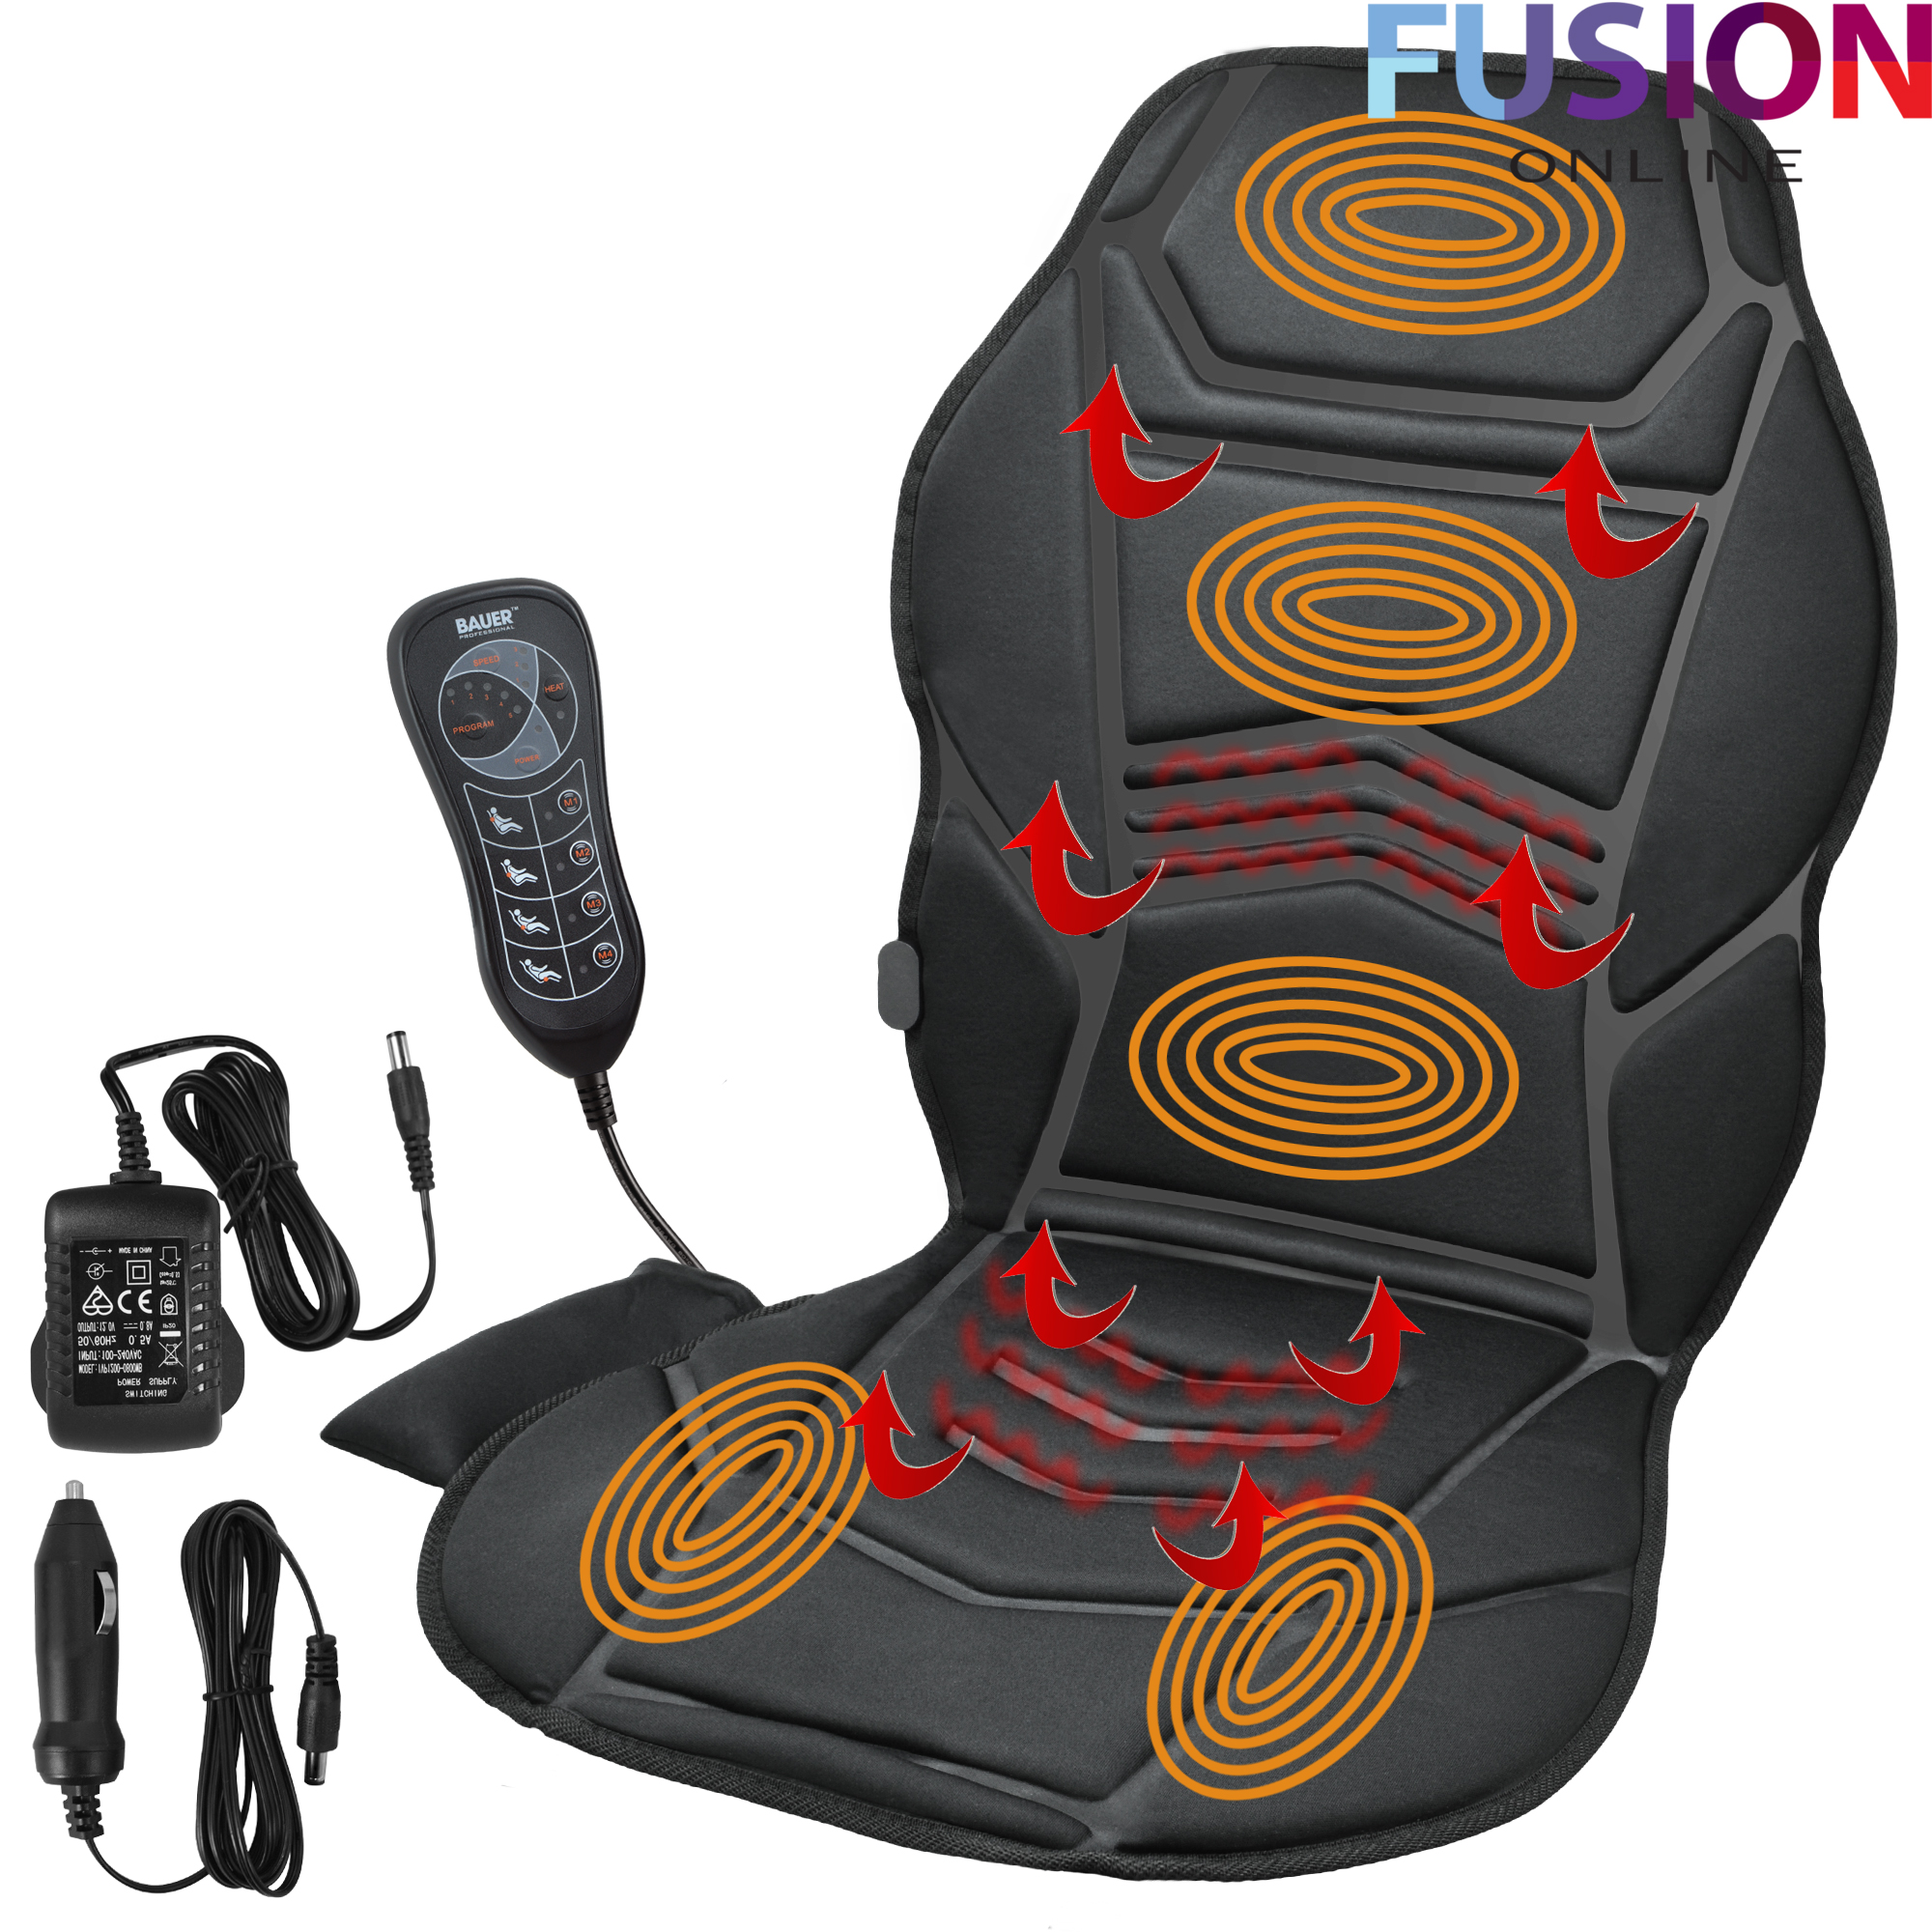 Massage Chair For Car Heated Back Seat Remote Control Massage Chair Car Home Van